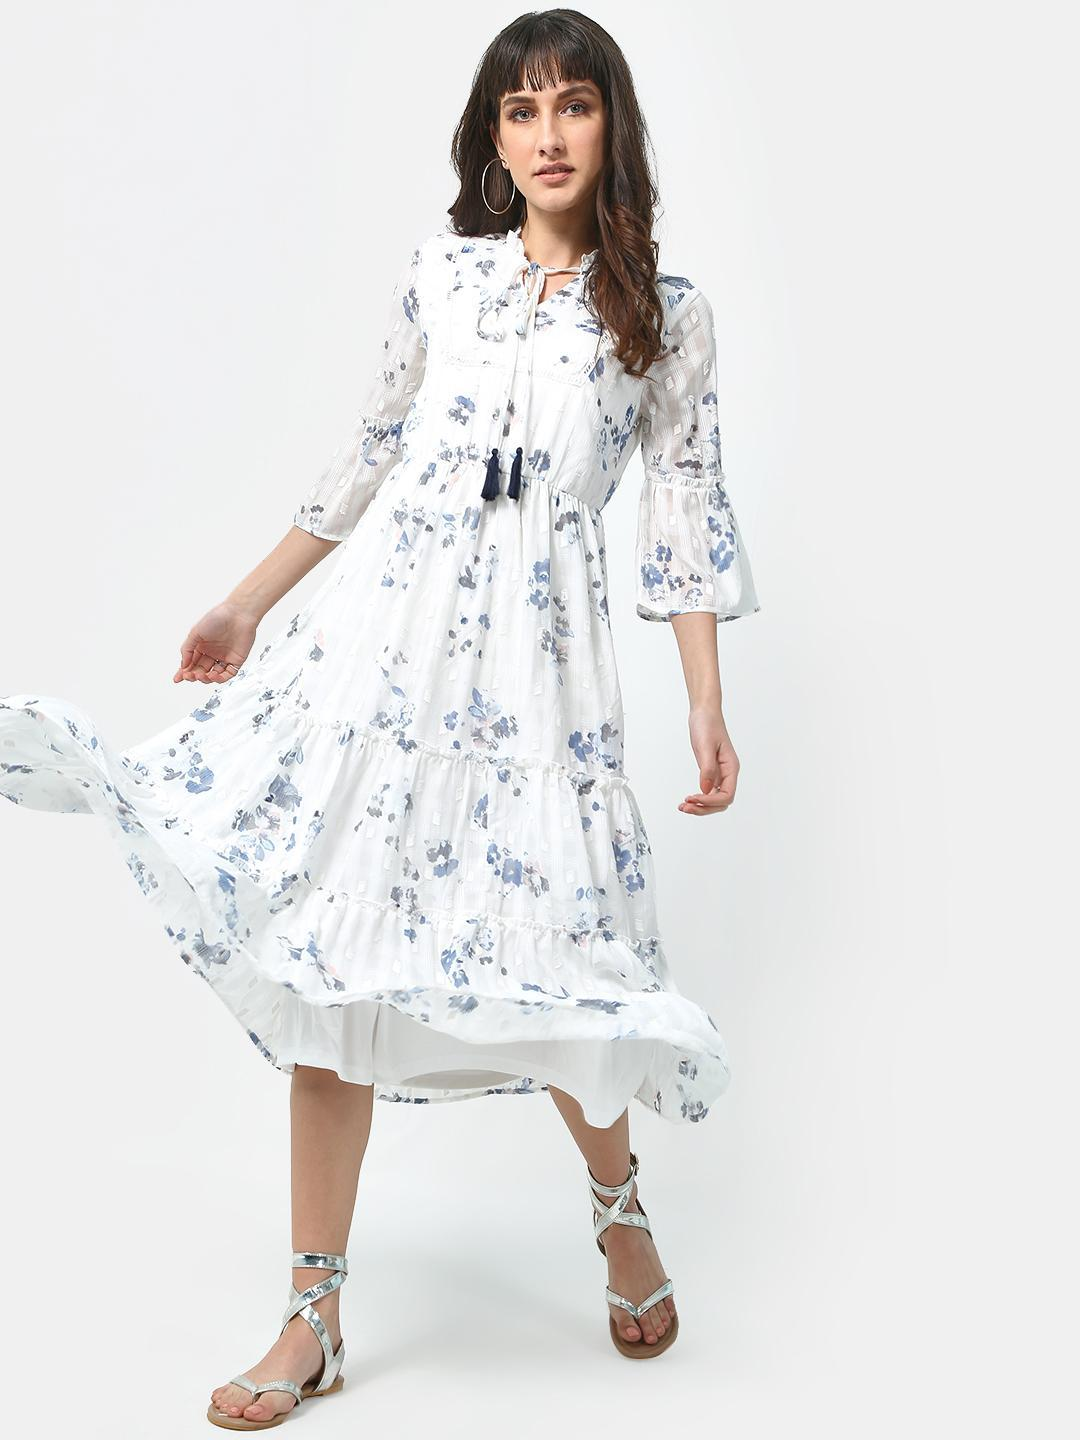 Oxolloxo Off-White Floral Print Ruffled Cinched Flared Dress 1